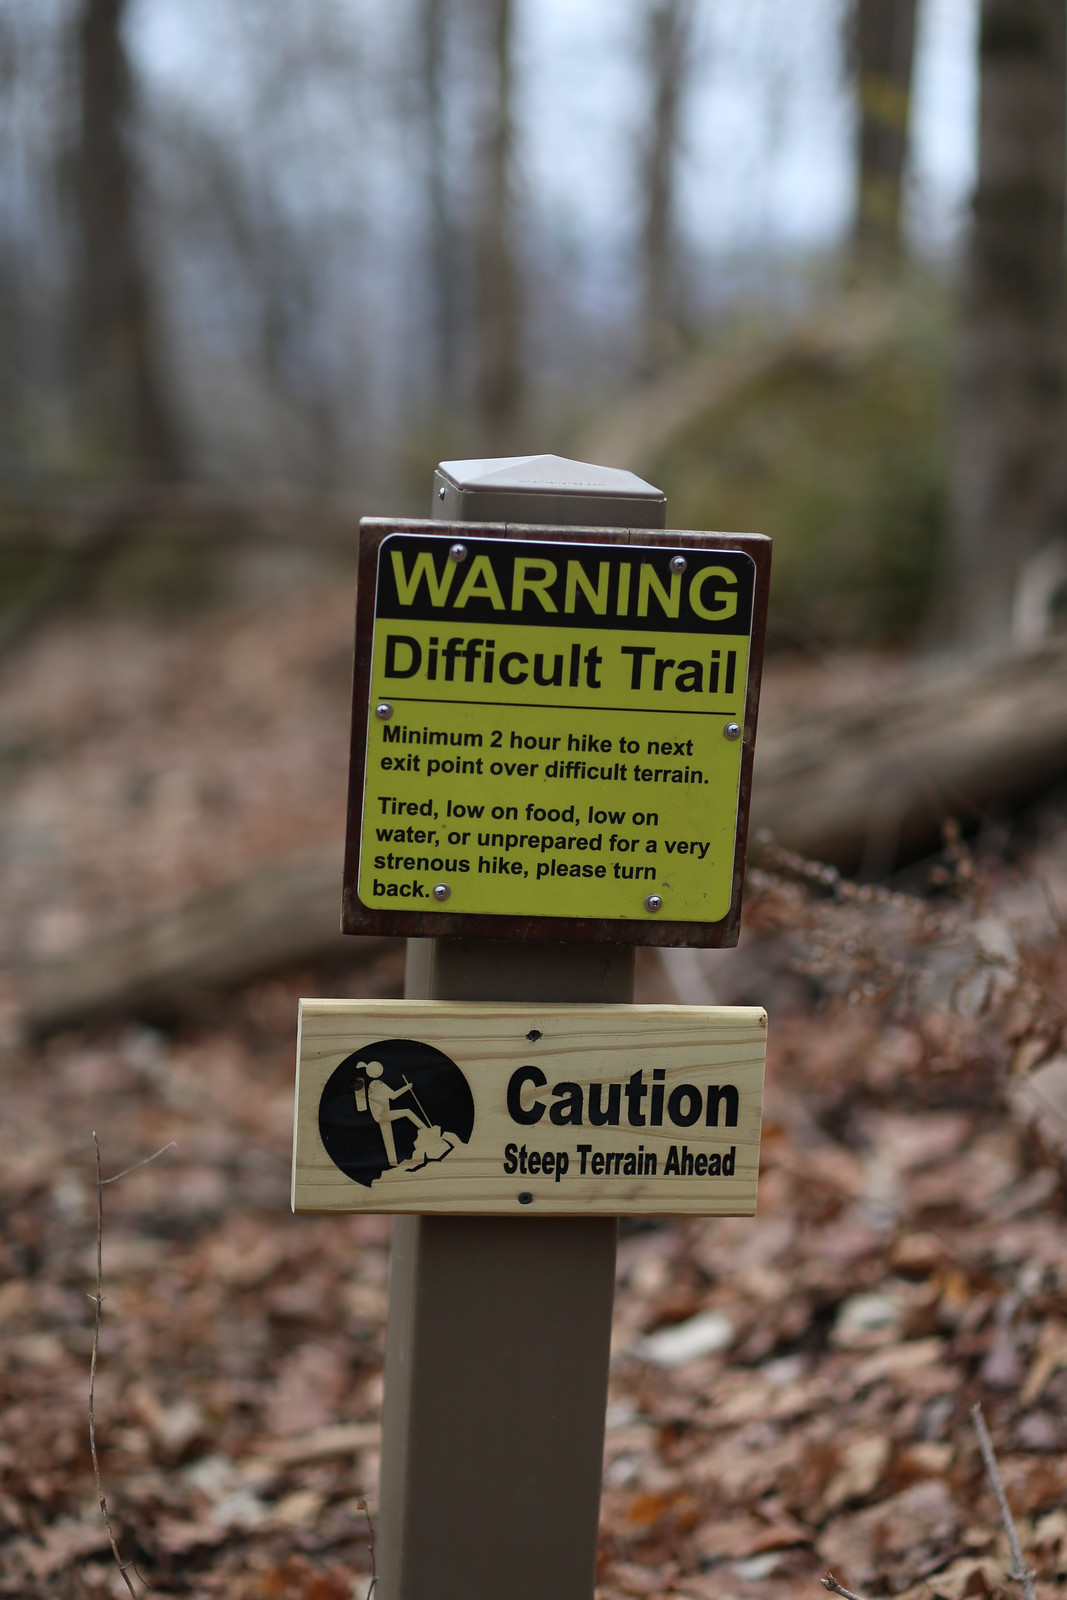 Tired, low on food, low on water, or unprepared for a very strenuous hike, please turn back.